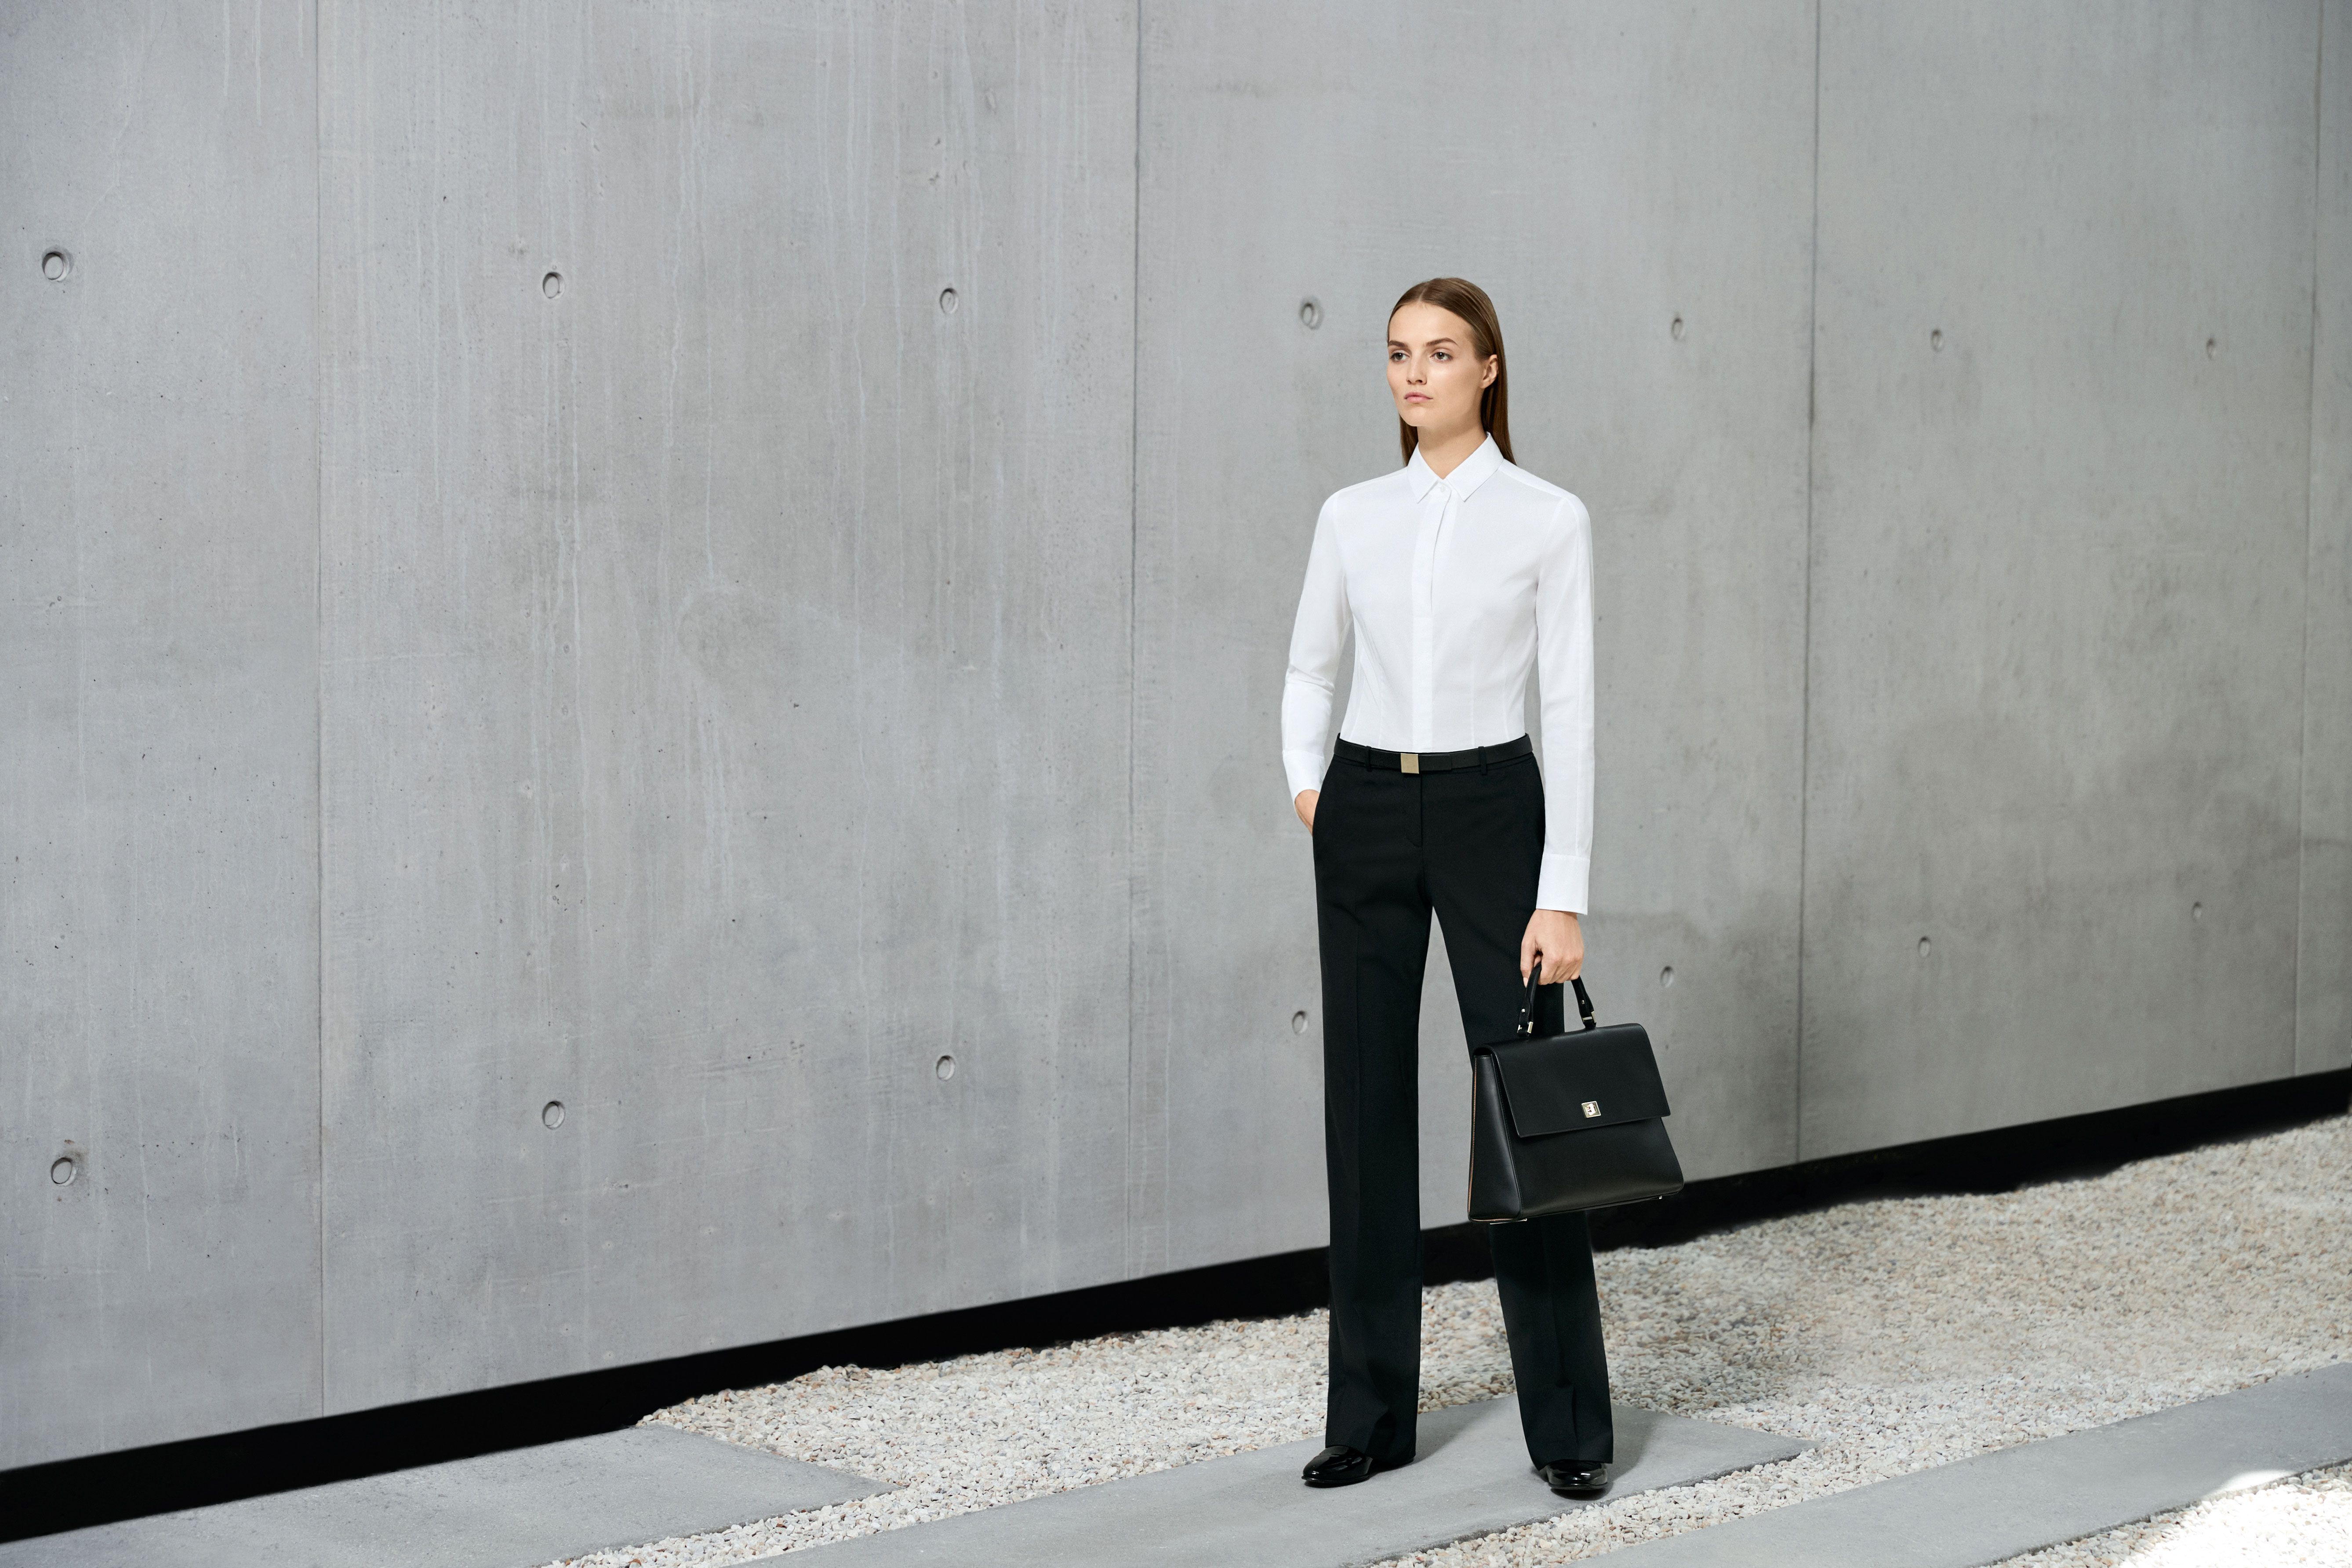 How to feel confident and dress smart at work b5f5b99f2